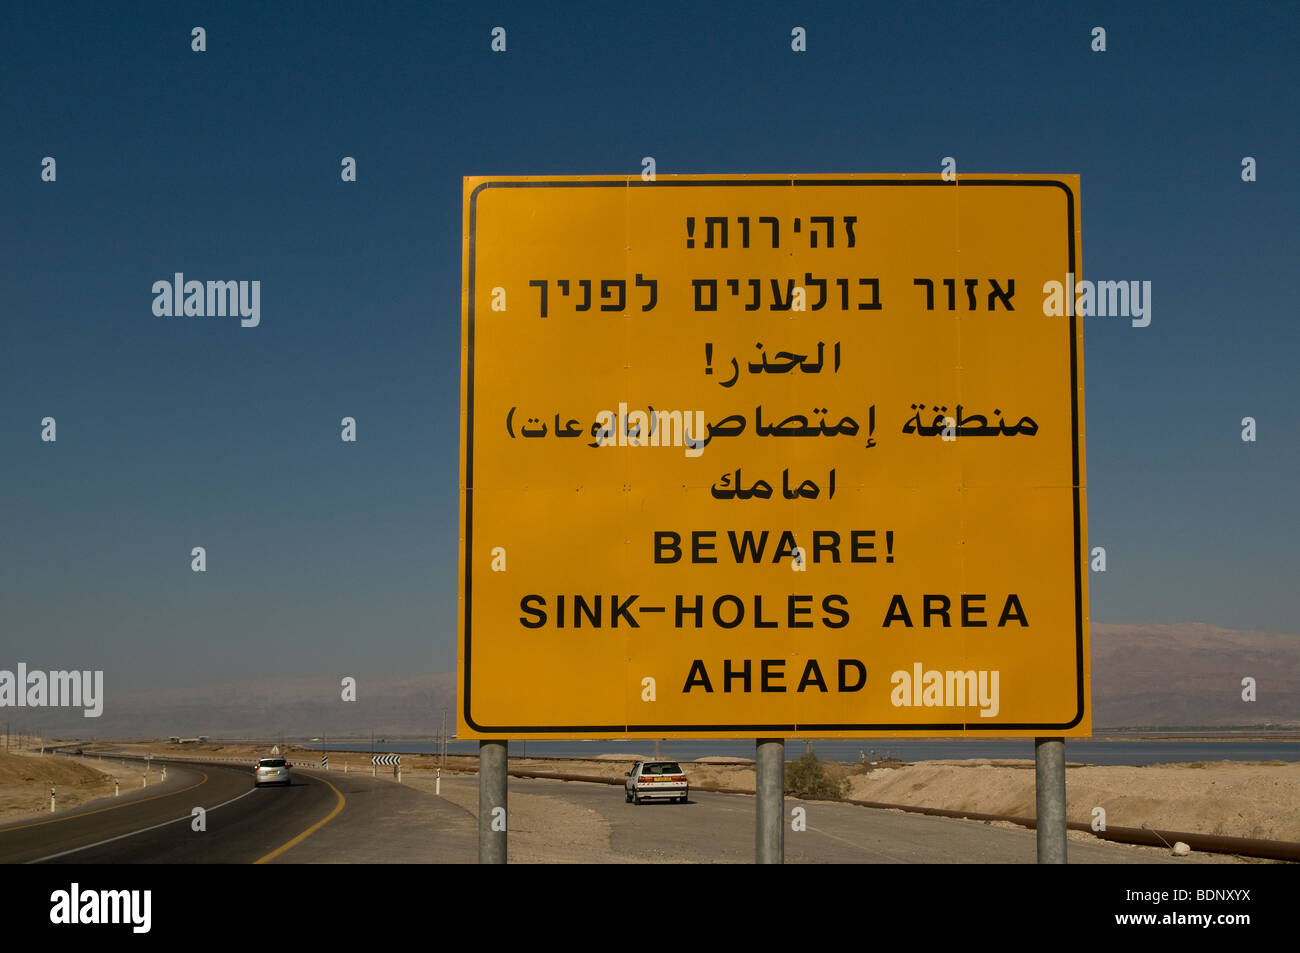 Warning sign for sinkholes at the Dead Sea coast in Israel - Stock Image